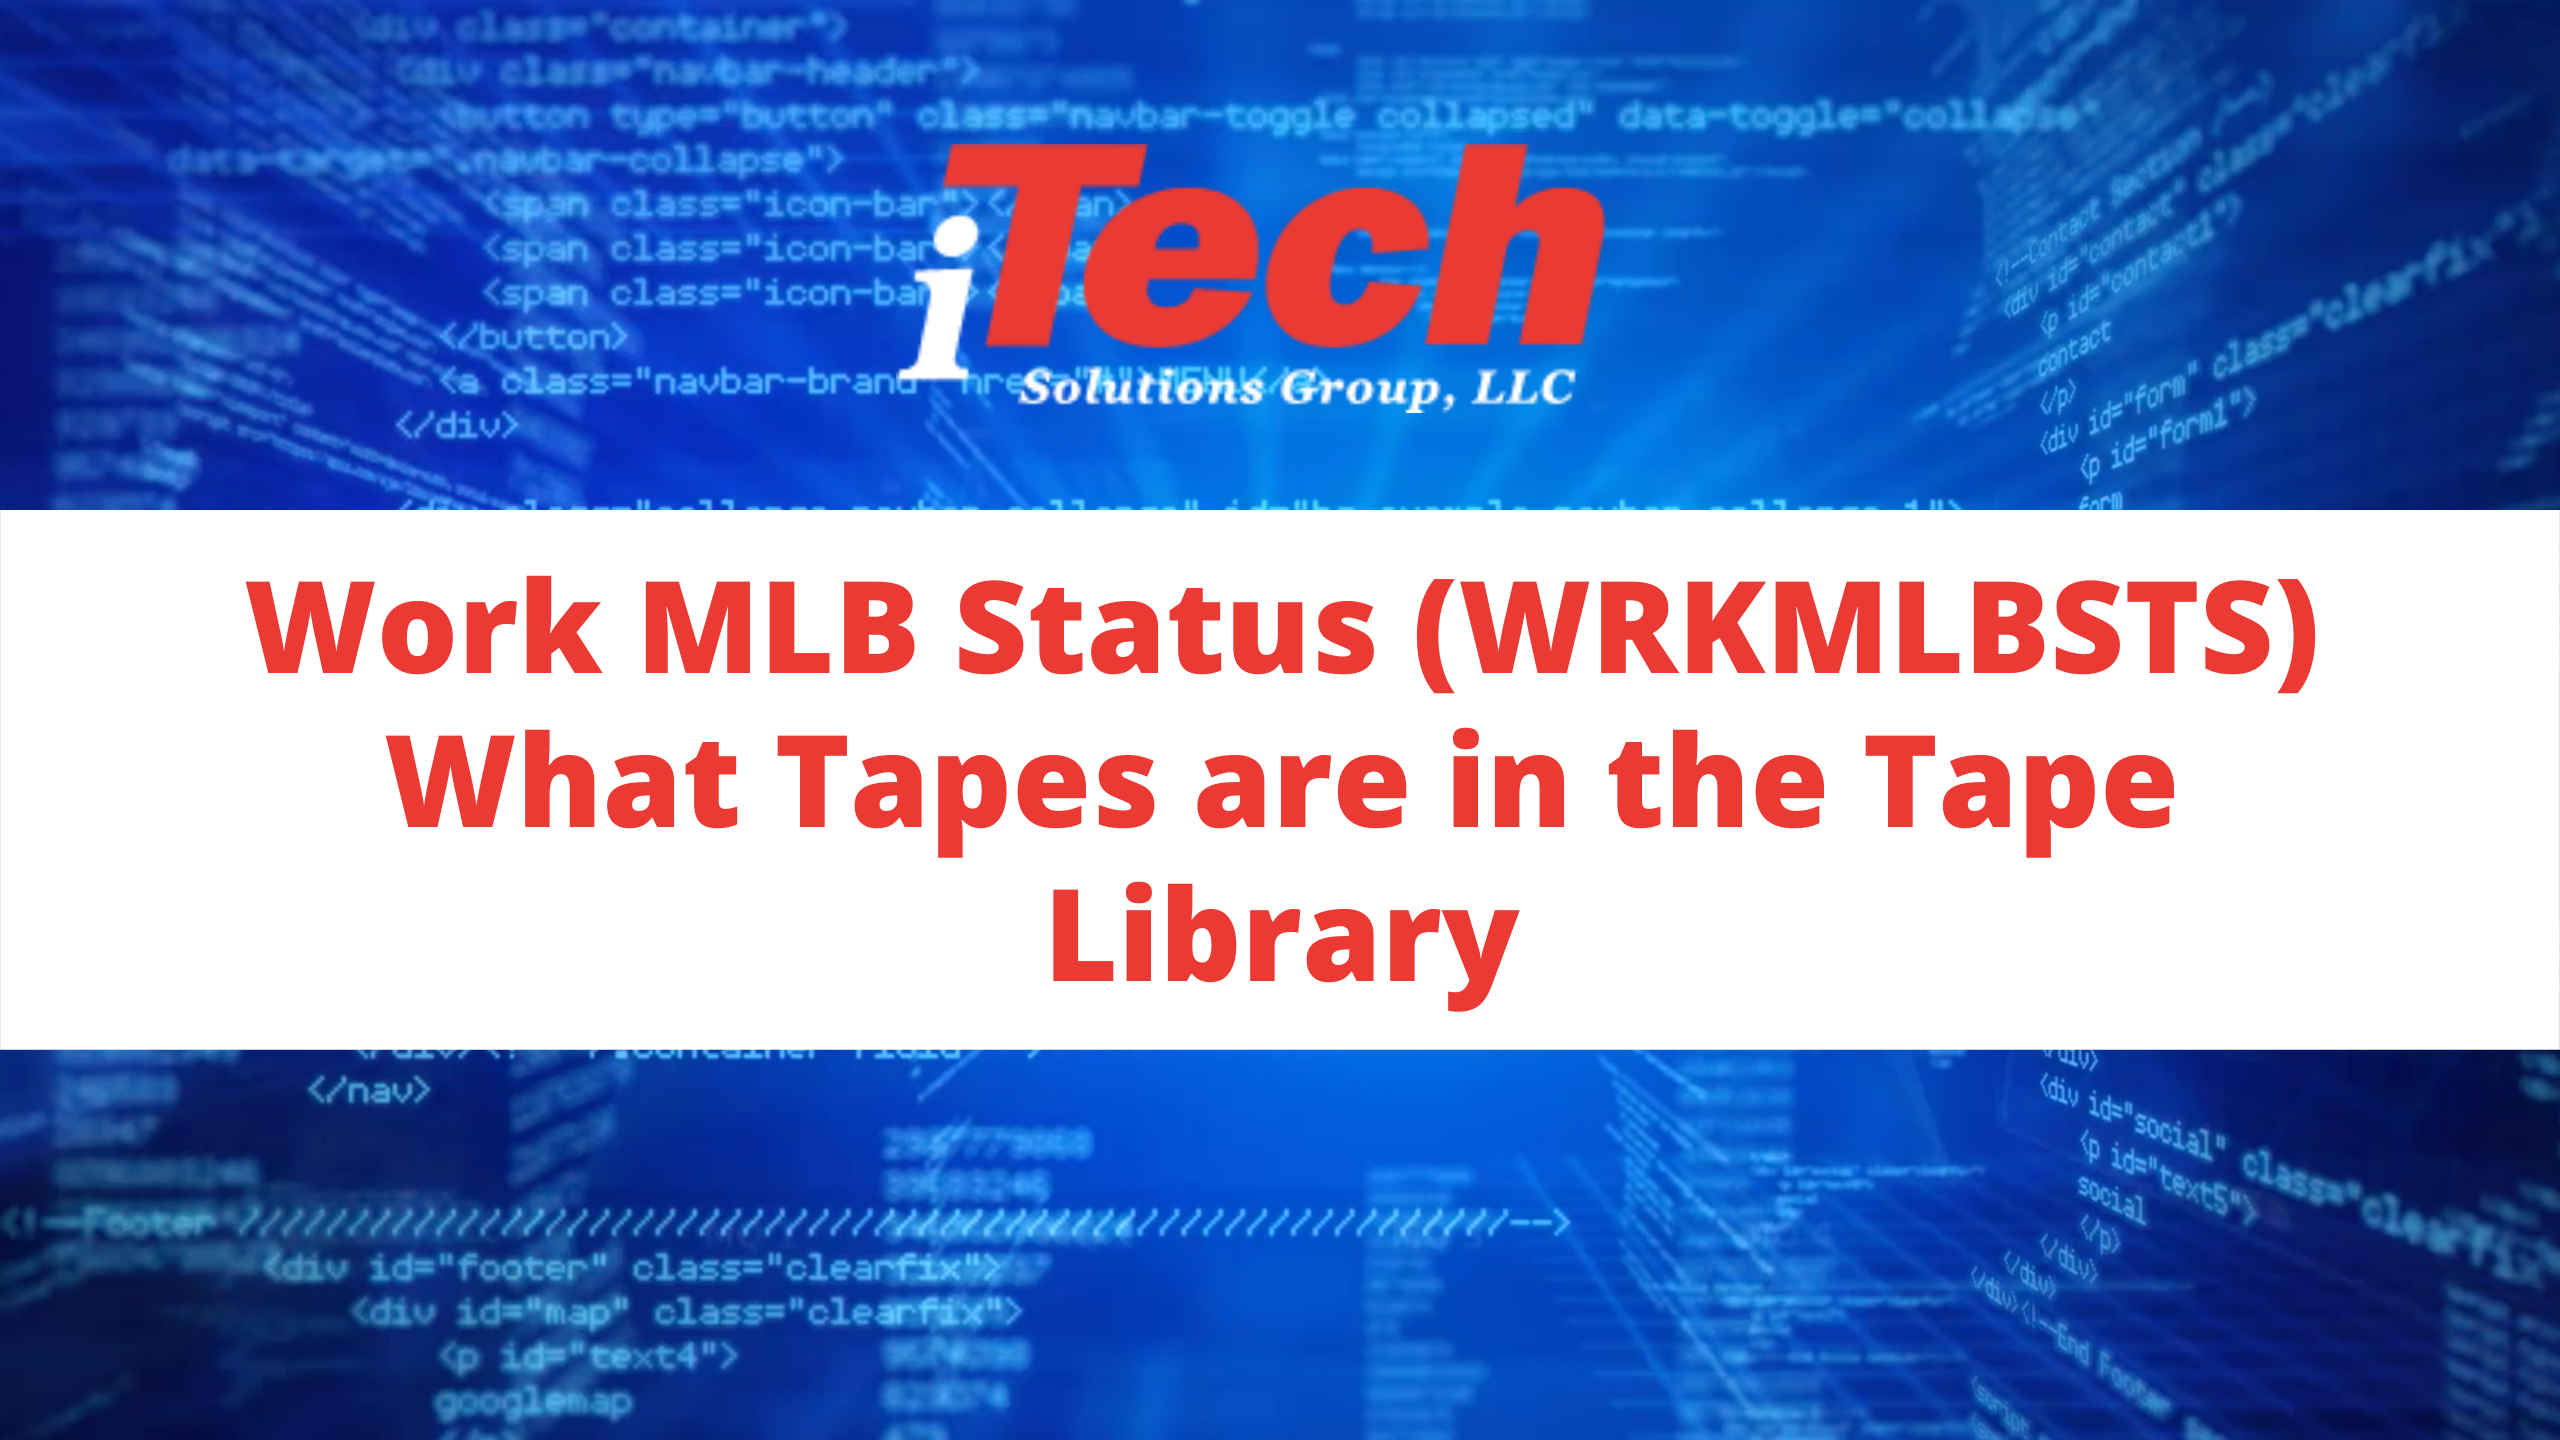 Work MLB Status (WRKMLBSTS) What Tapes are in the Tape Library